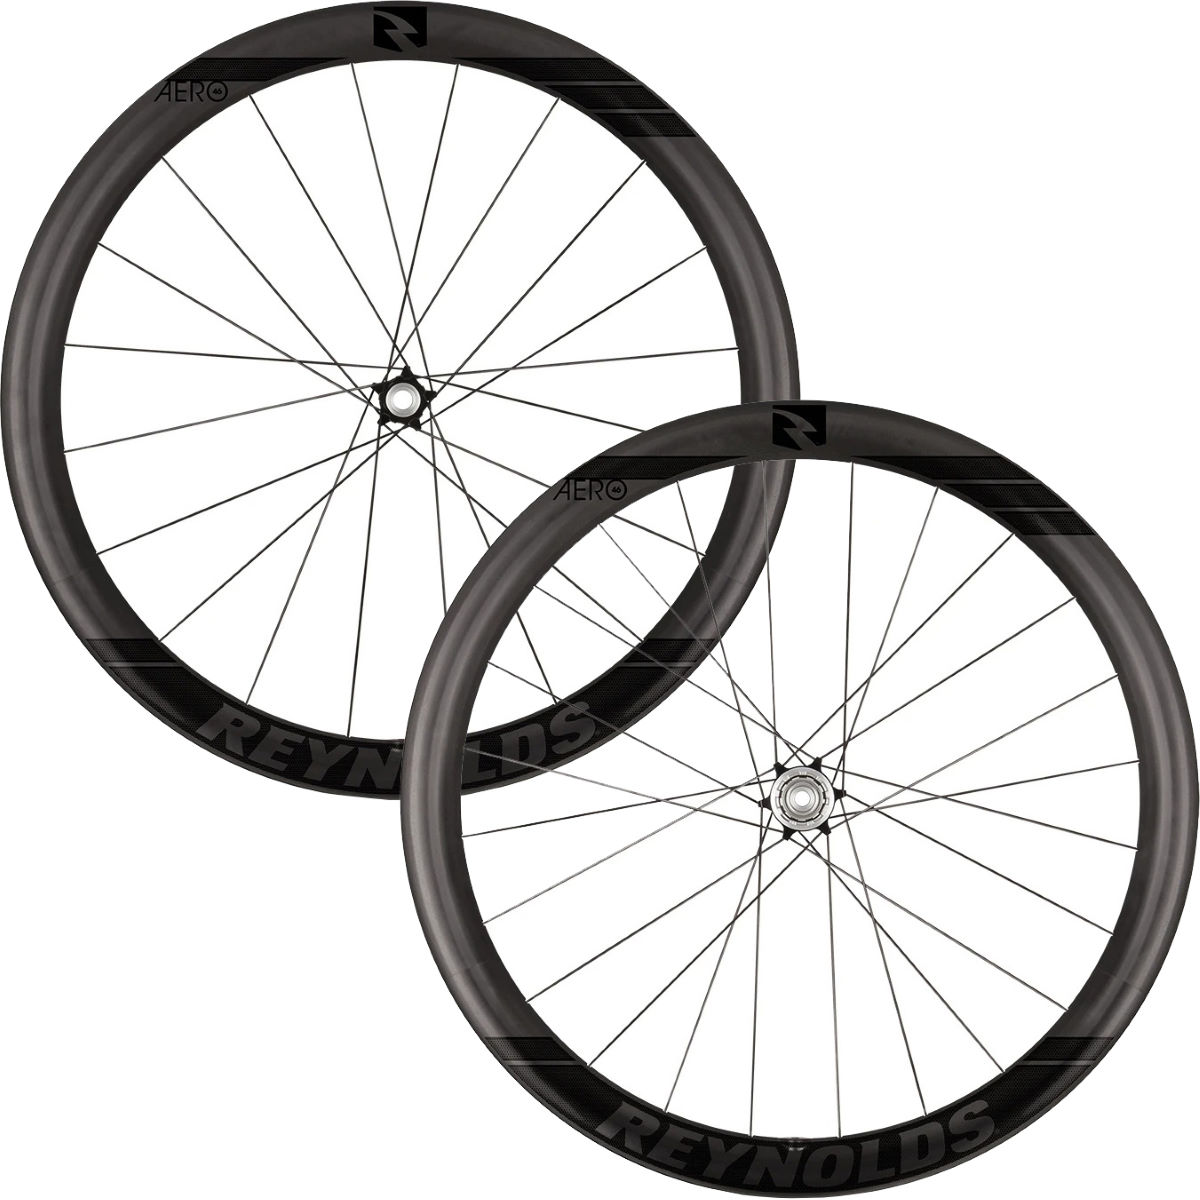 Reynolds Reynolds Aero 46 Black Label Carbon Disc Road Wheelset   Wheel Sets